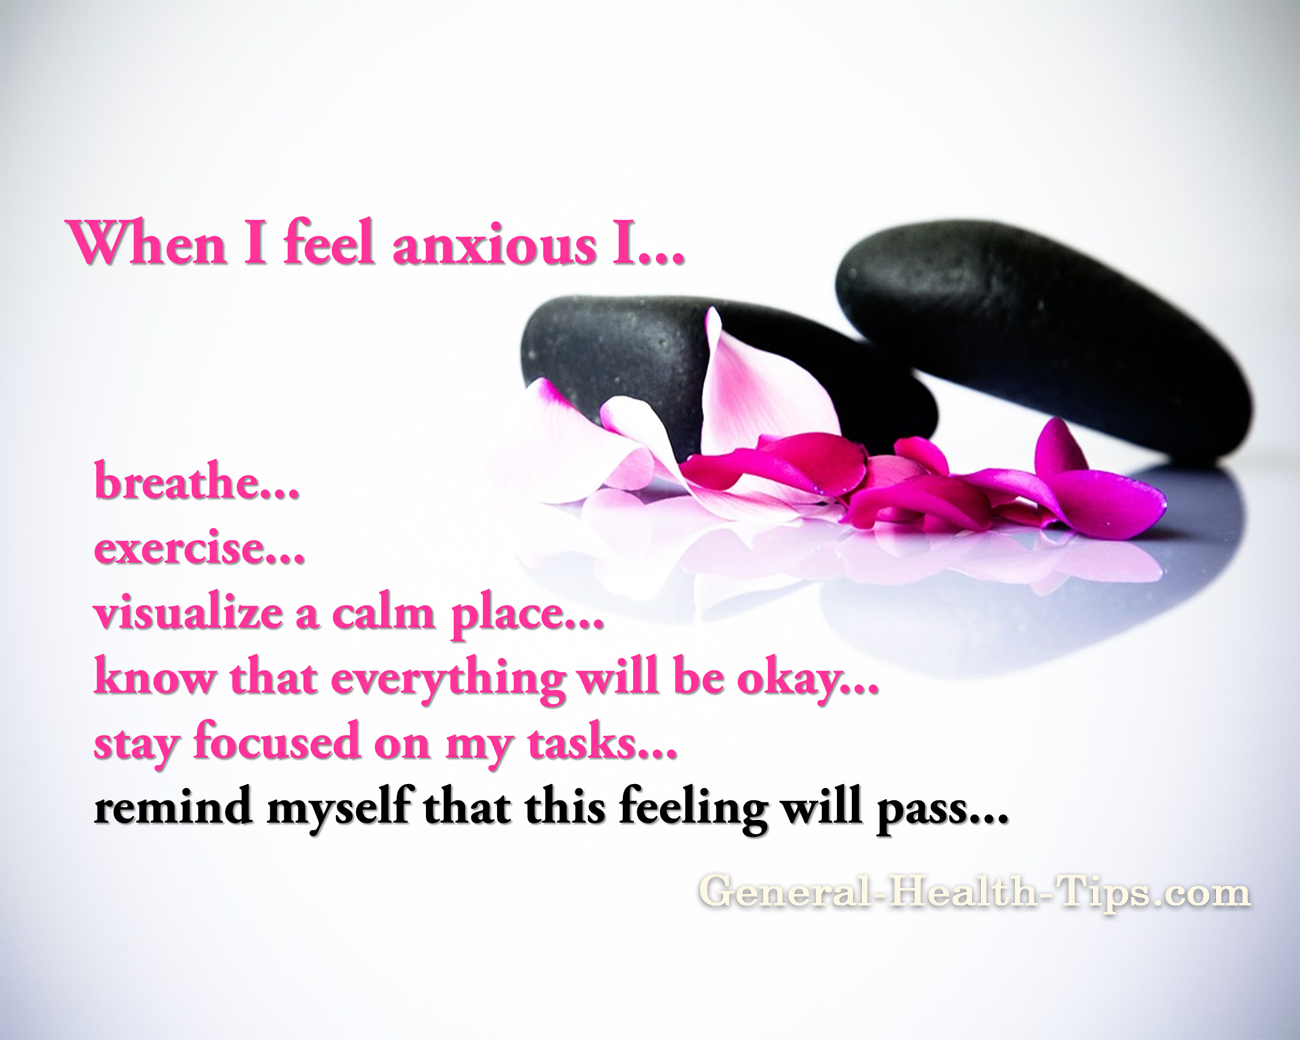 Anxiety And Depression Quotes Calming Quotes For Anxiety And Depression   Health Tips For Men